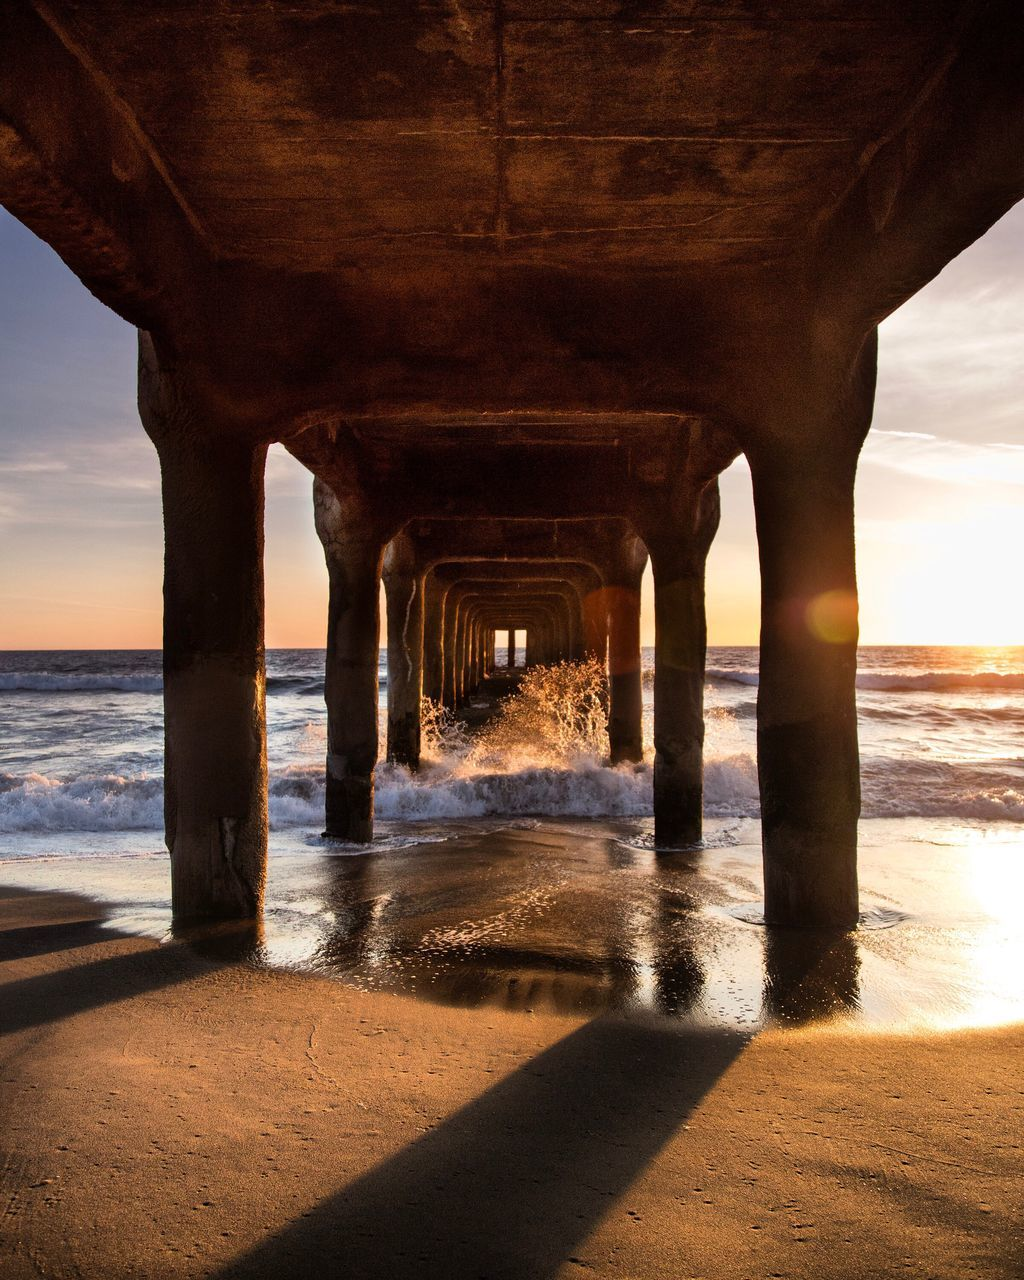 underneath, water, sea, below, bridge - man made structure, nature, architectural column, architecture, built structure, sunset, sunlight, beach, outdoors, sky, under, scenics, day, no people, horizon over water, beauty in nature